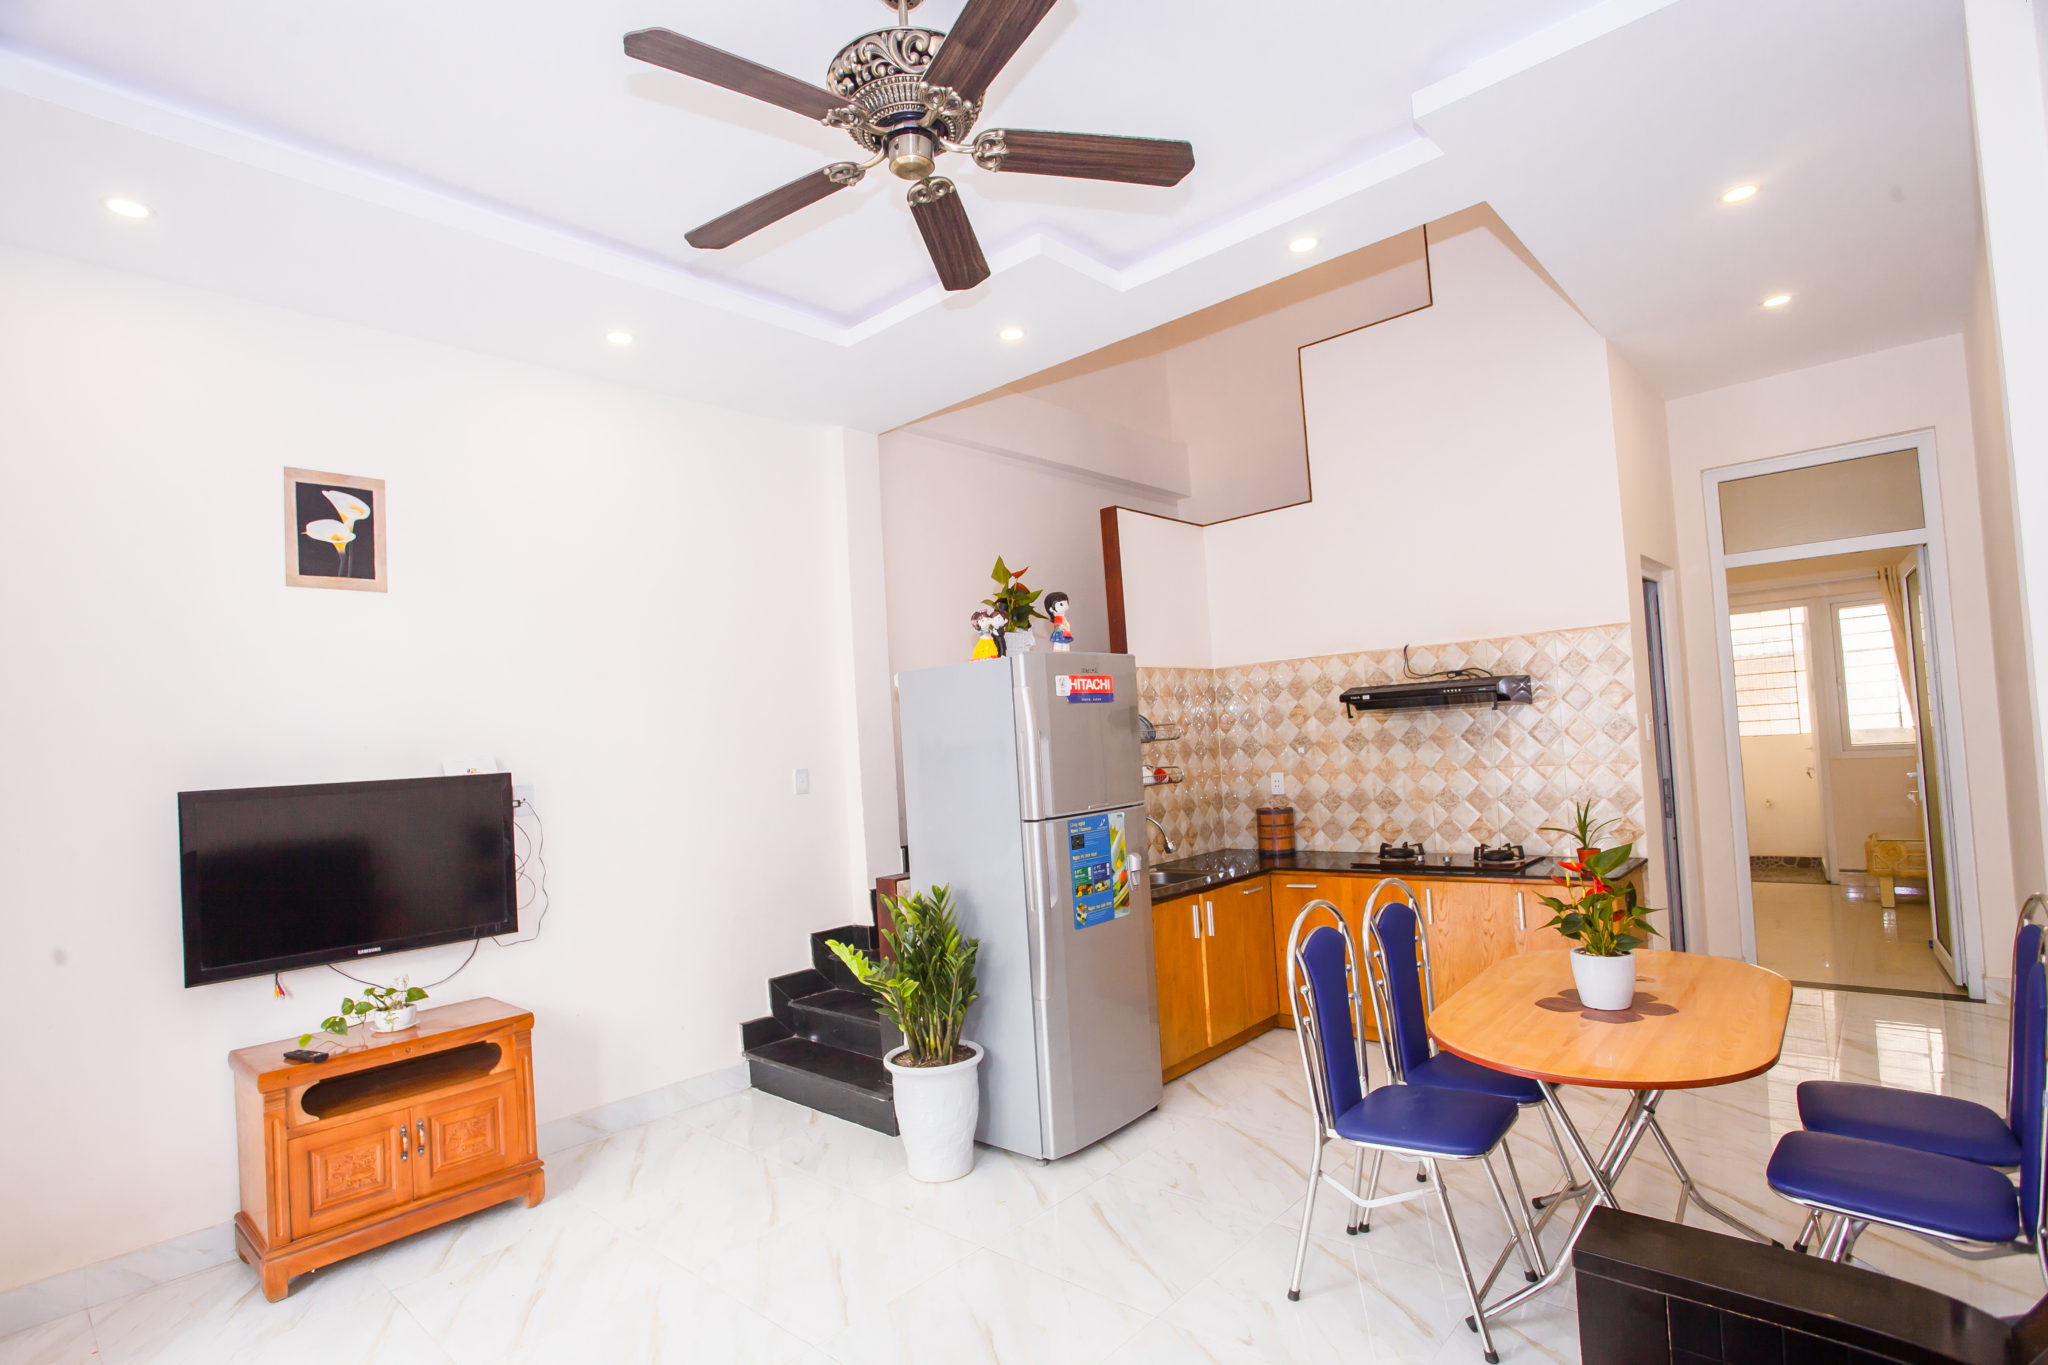 3 bedrooms house in An Thuong area for rent short-term and long-term